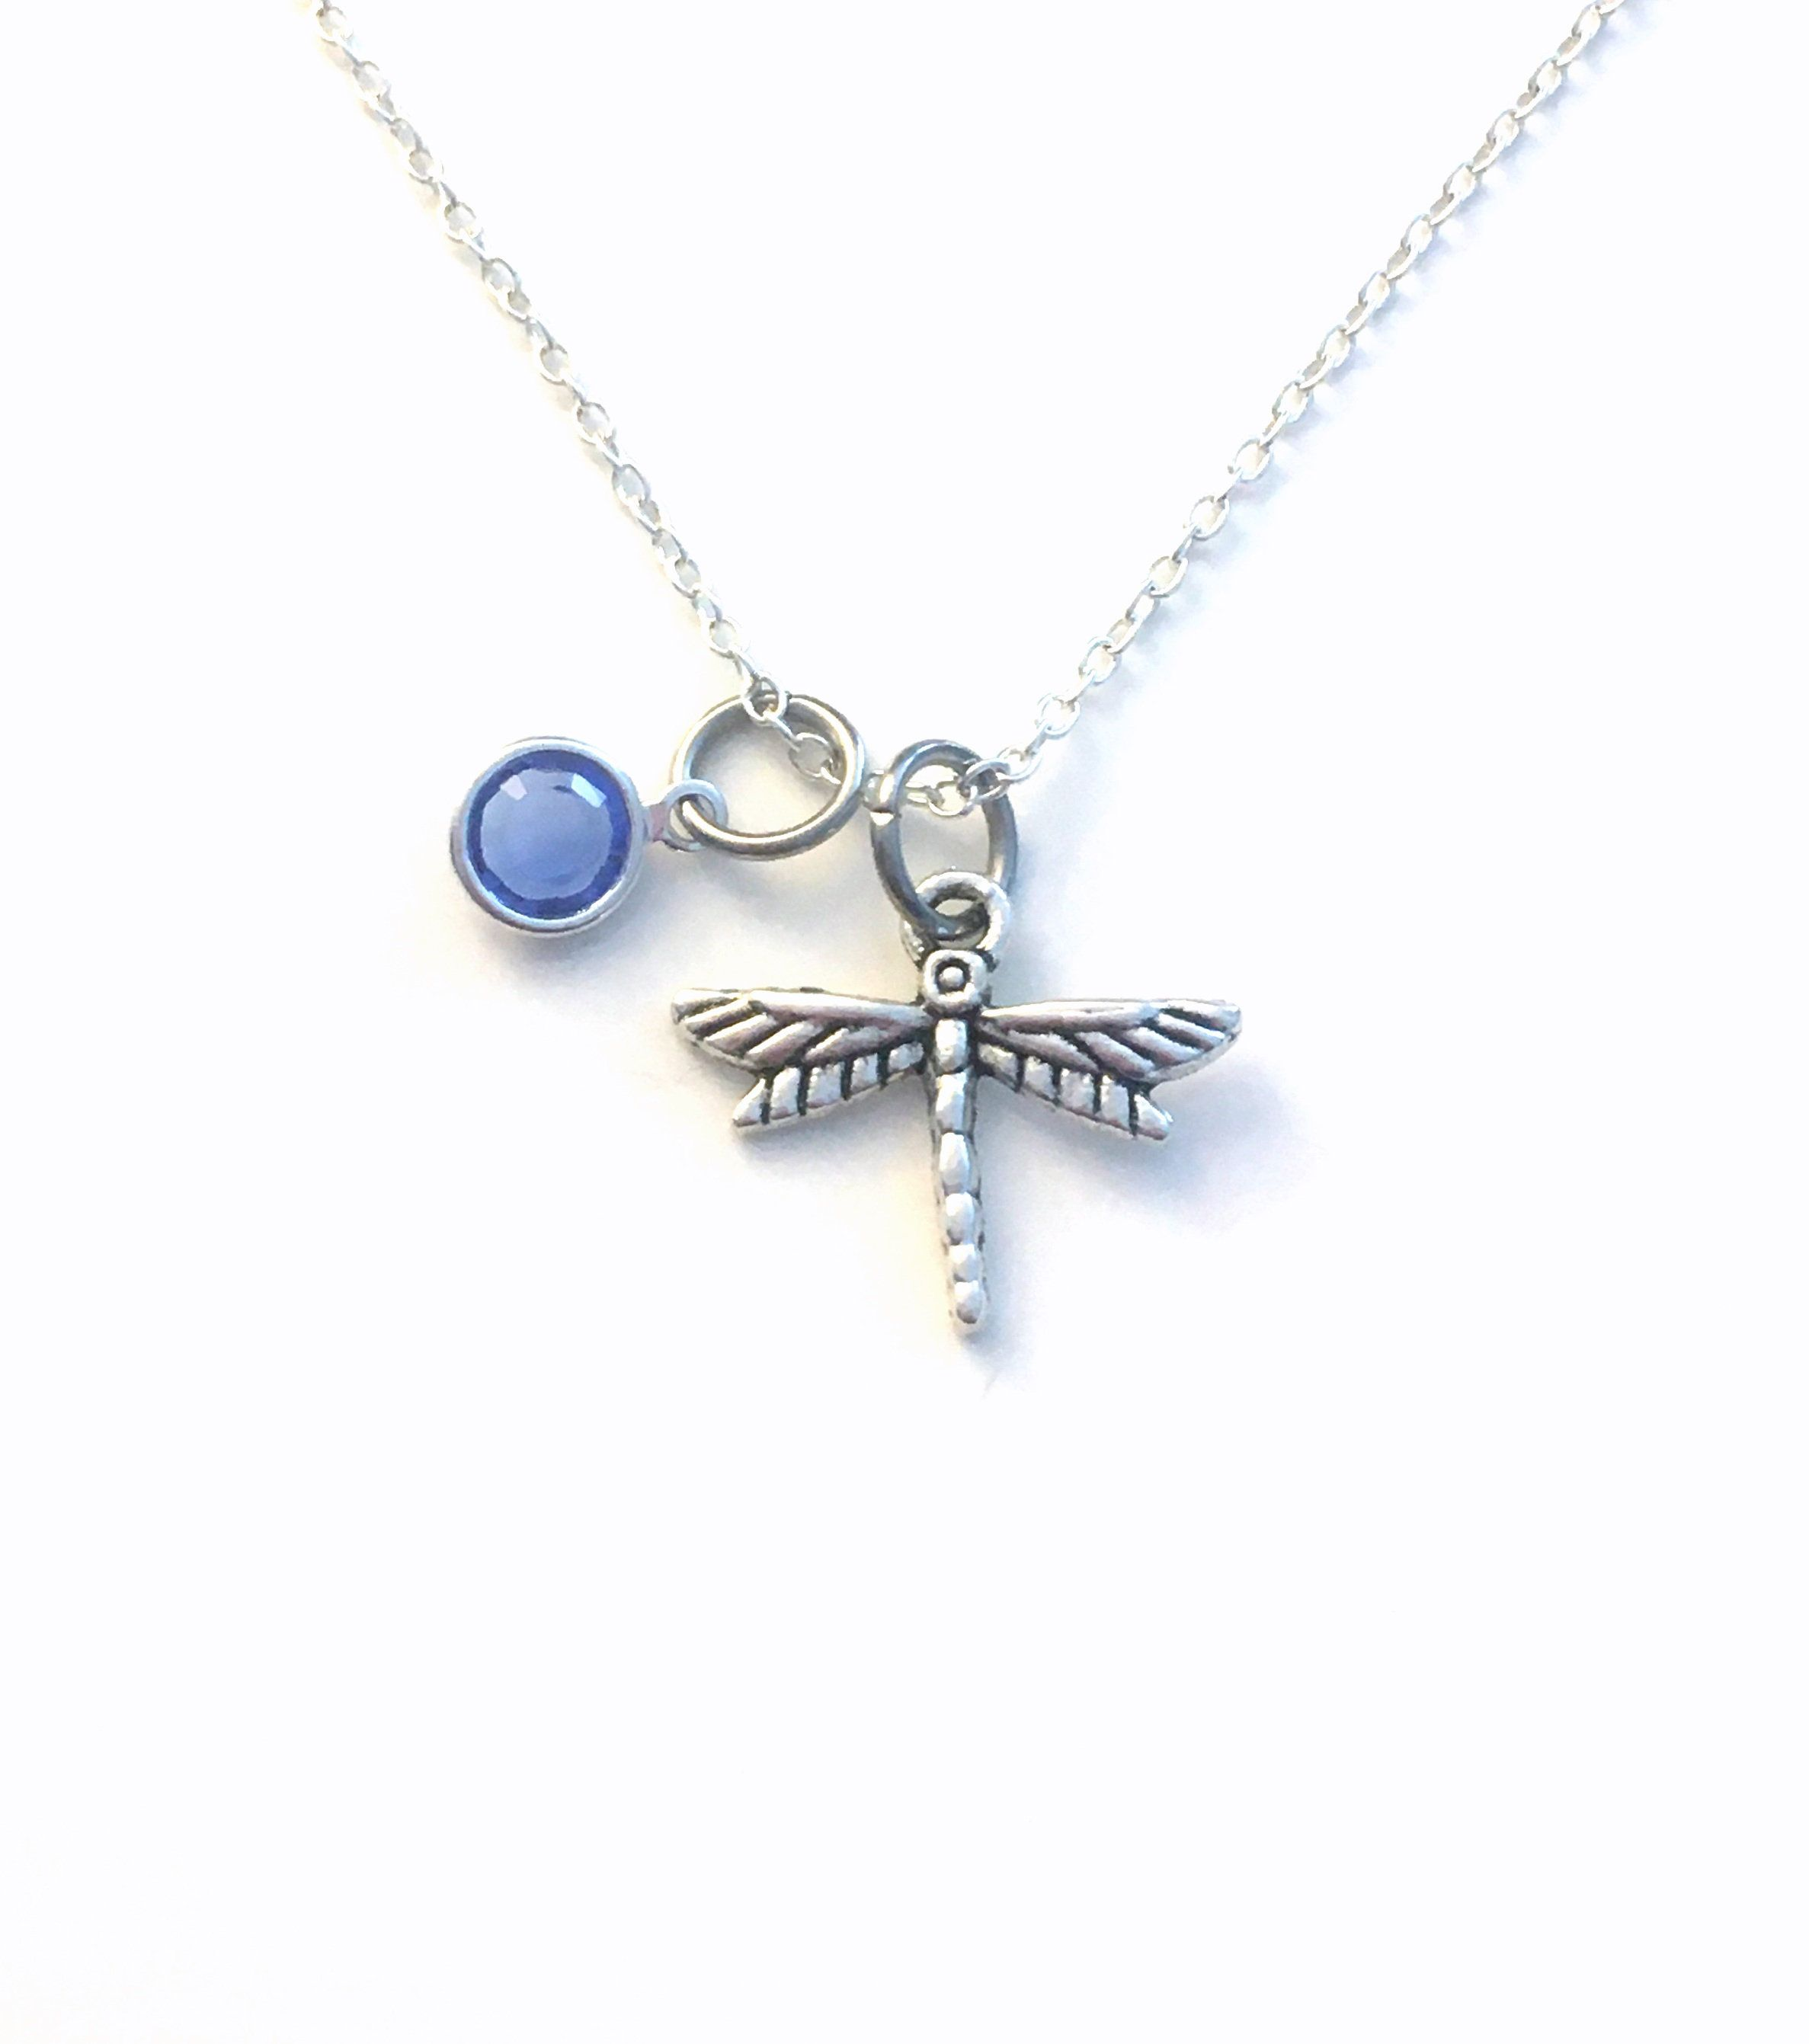 Dragonfly necklace dragon fly gift for gardeners jewelry